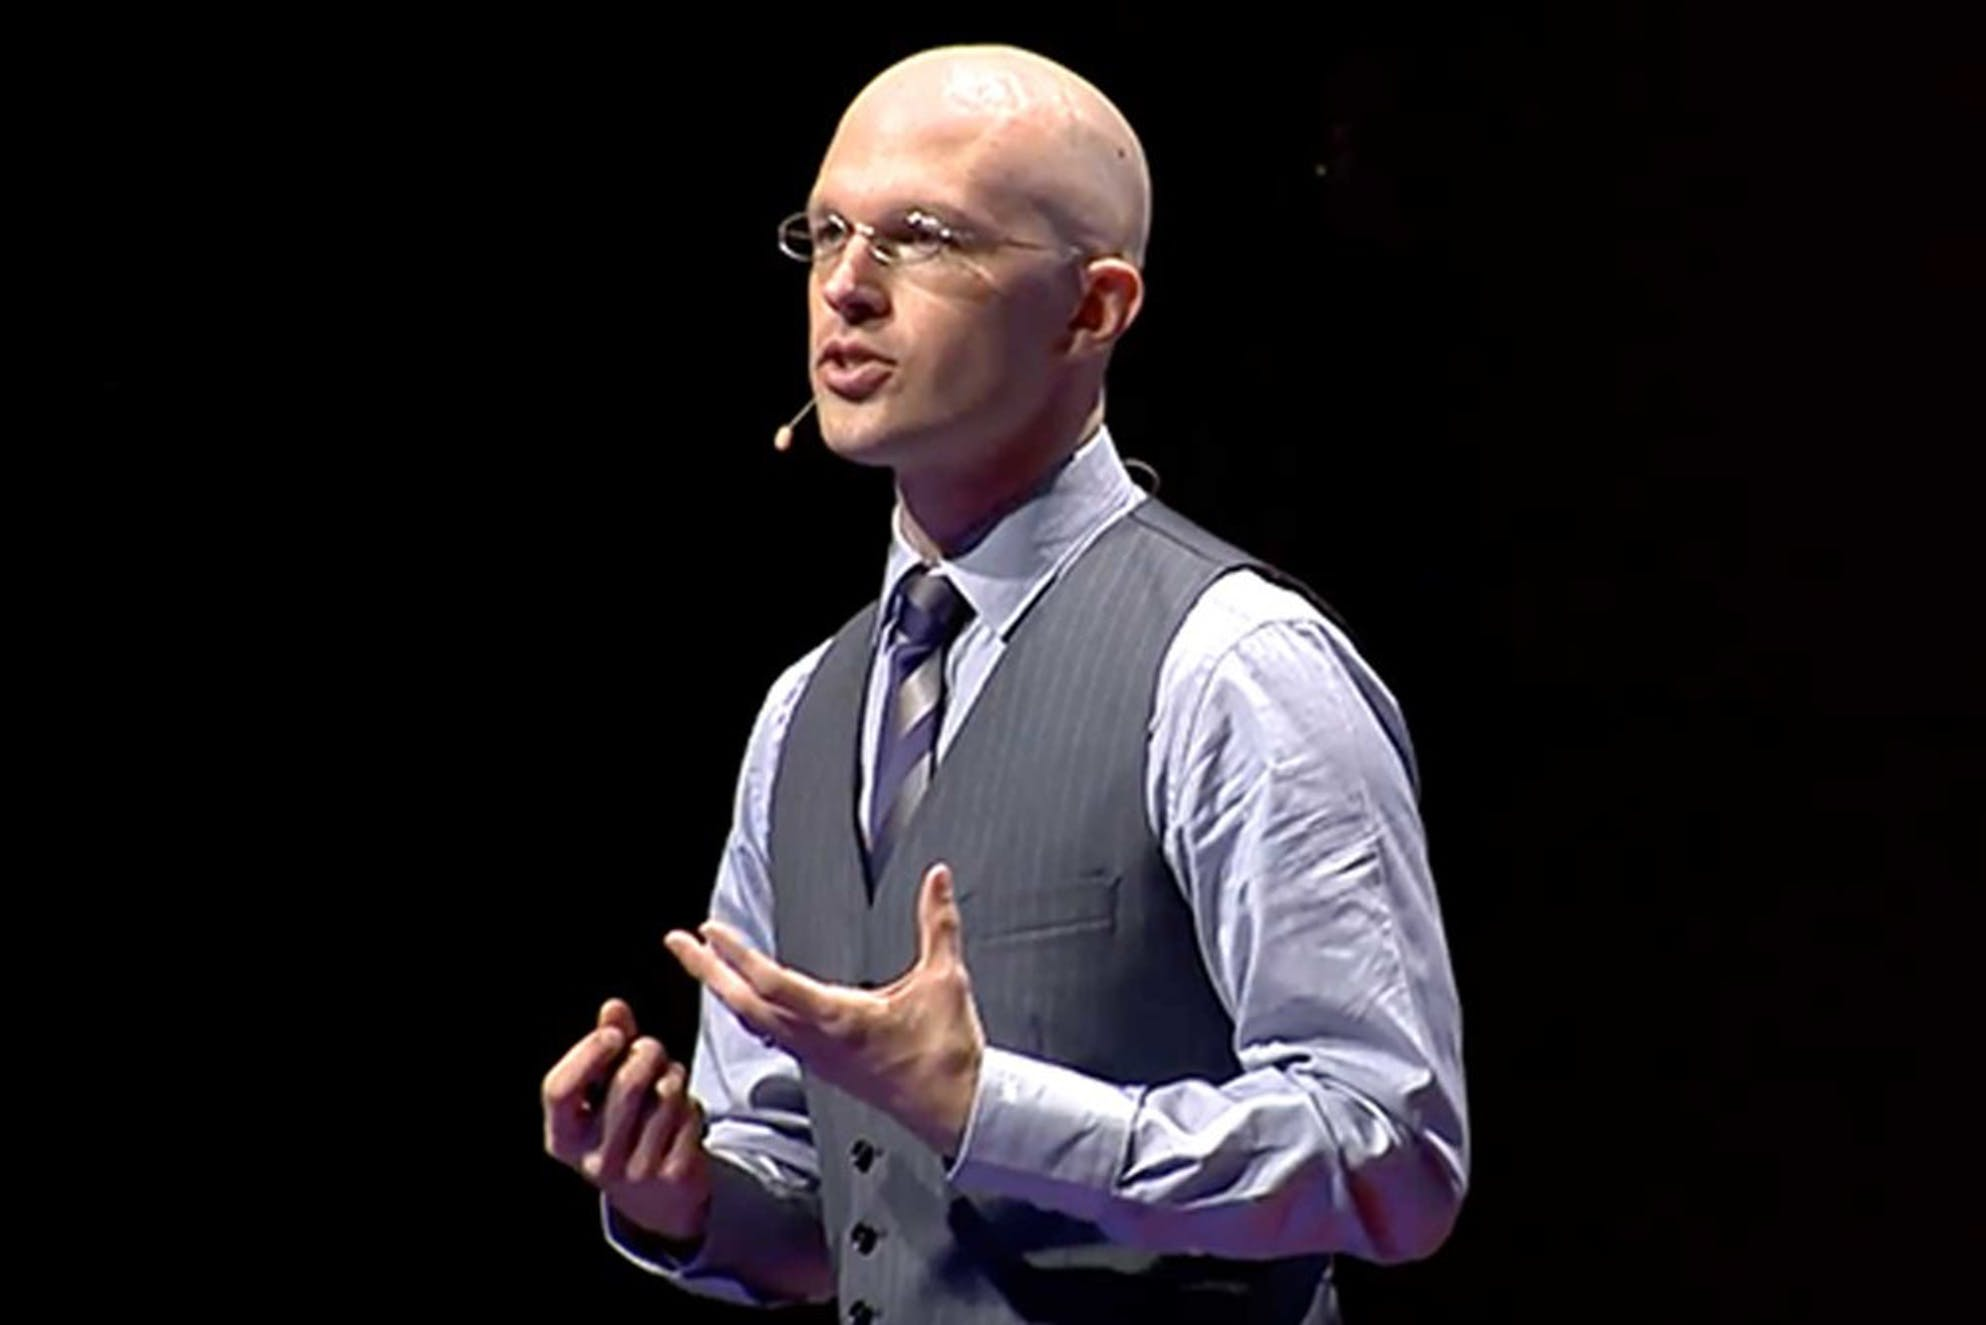 Josh Kaufman on stage tells people how to learn anything on your own